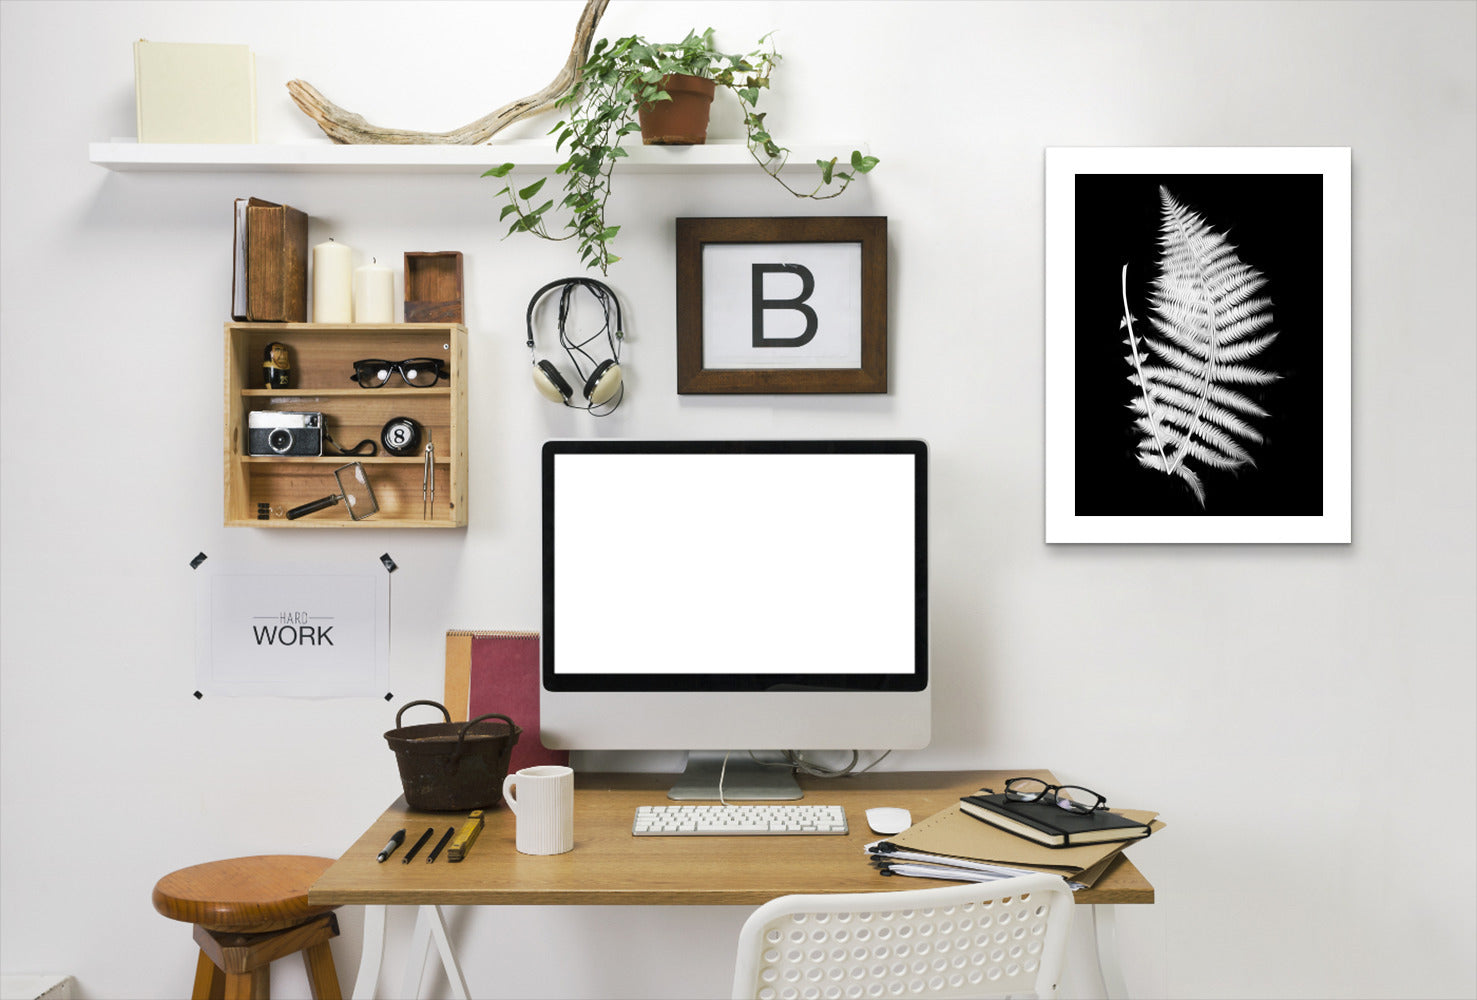 Swirl Fern Ii By Chaos & Wonder Design - White Framed Print